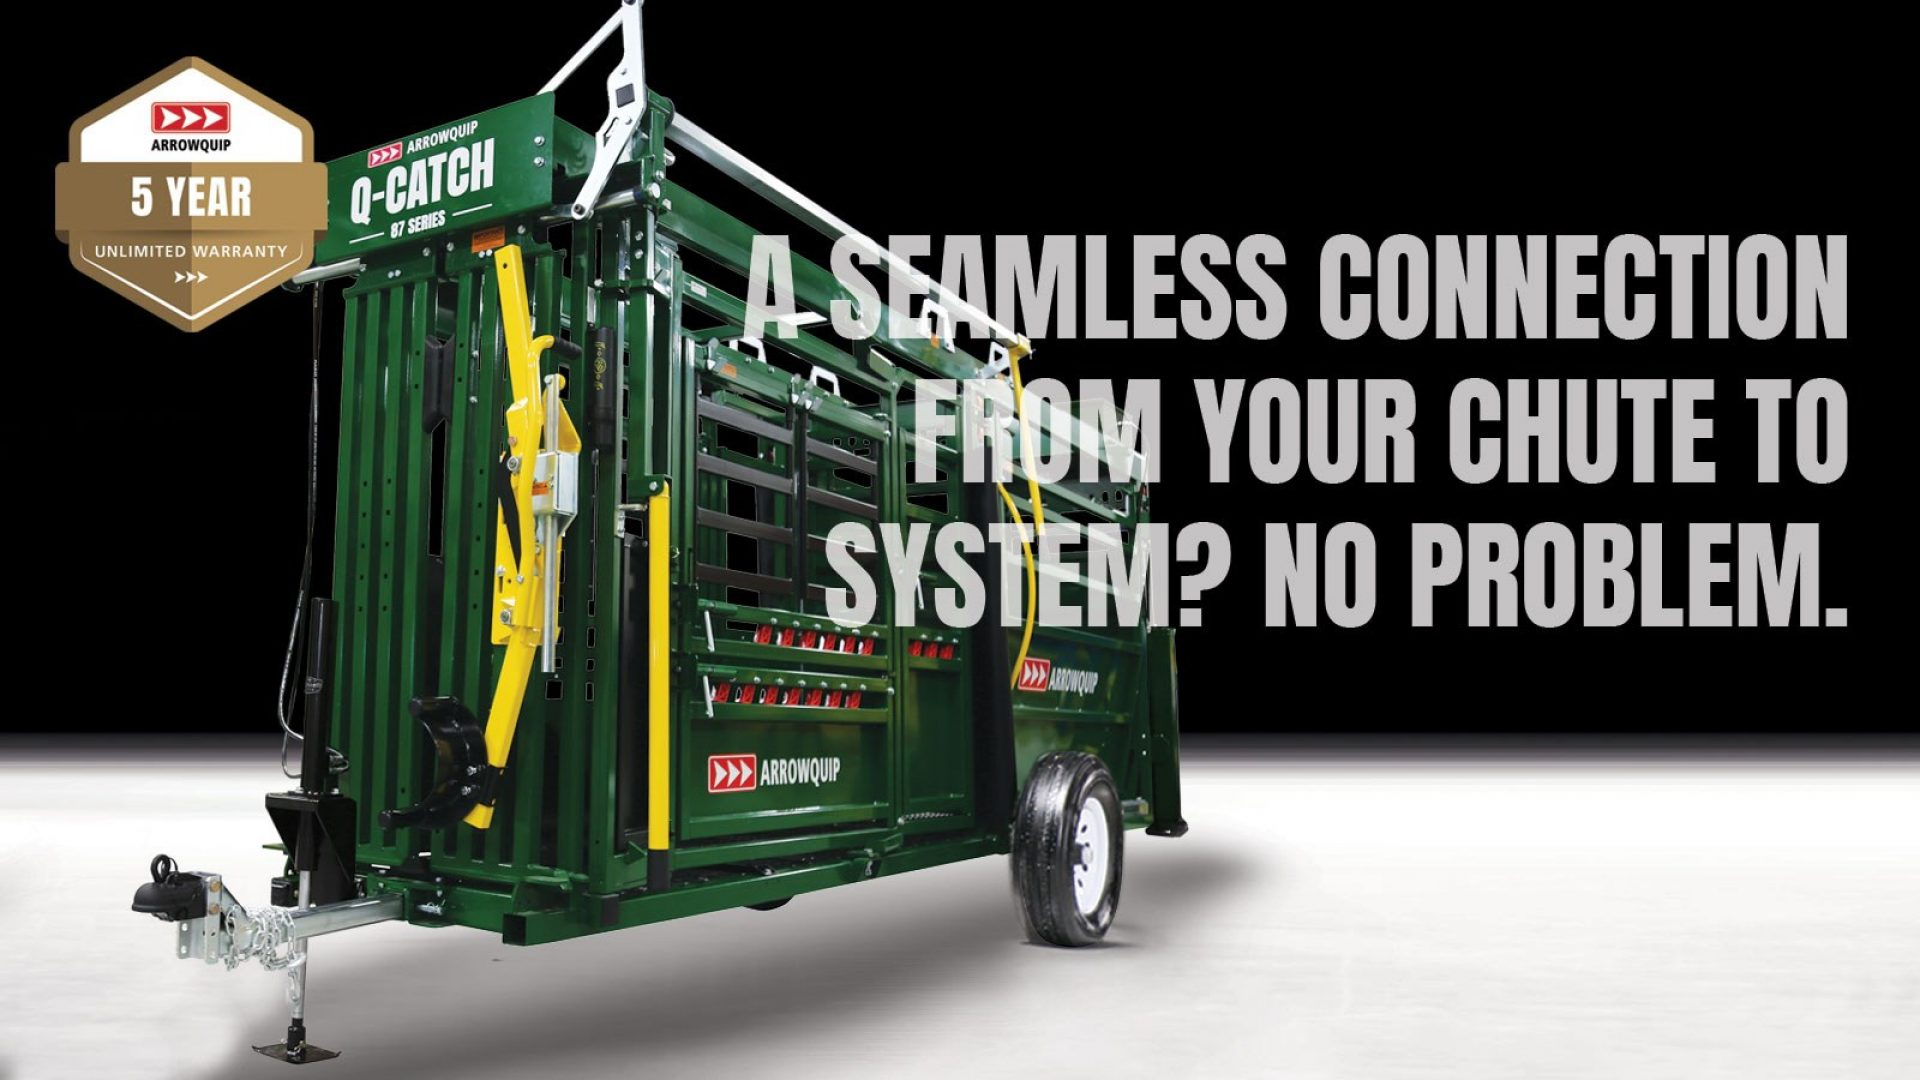 Q-Catch 87 Series portable cattle chute and alley